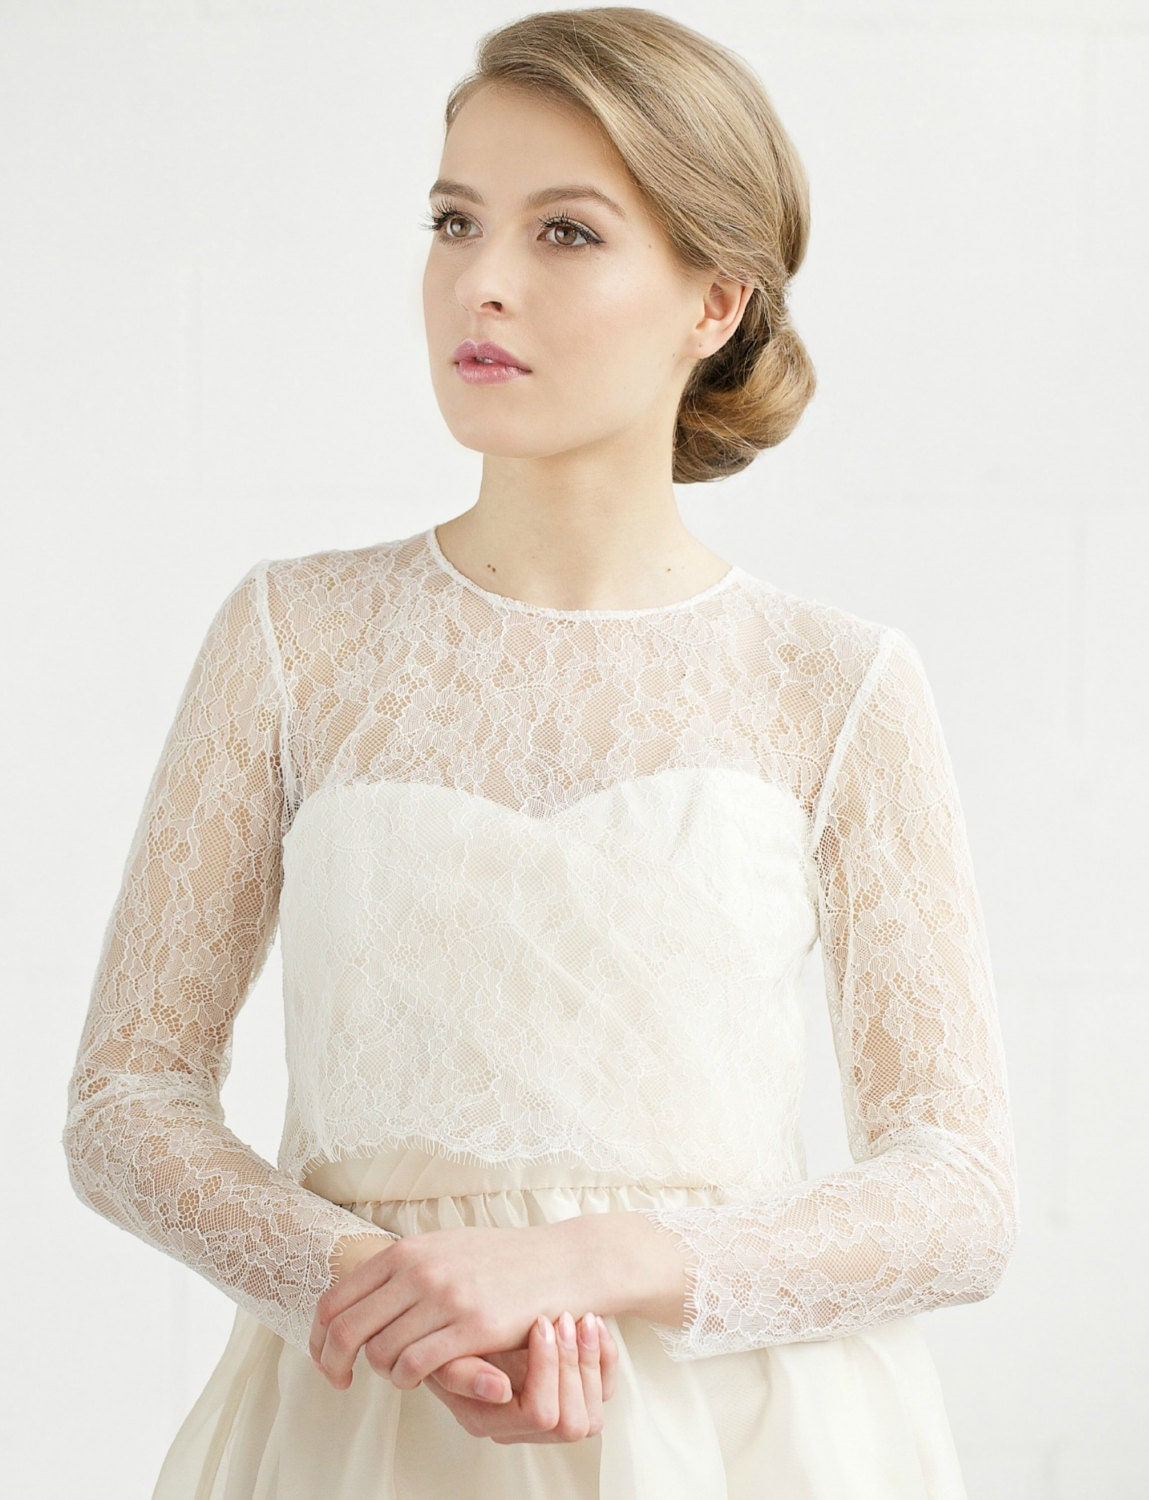 Wedding lace top bridal lace cover up bridal by for Long sleeve wedding dress topper